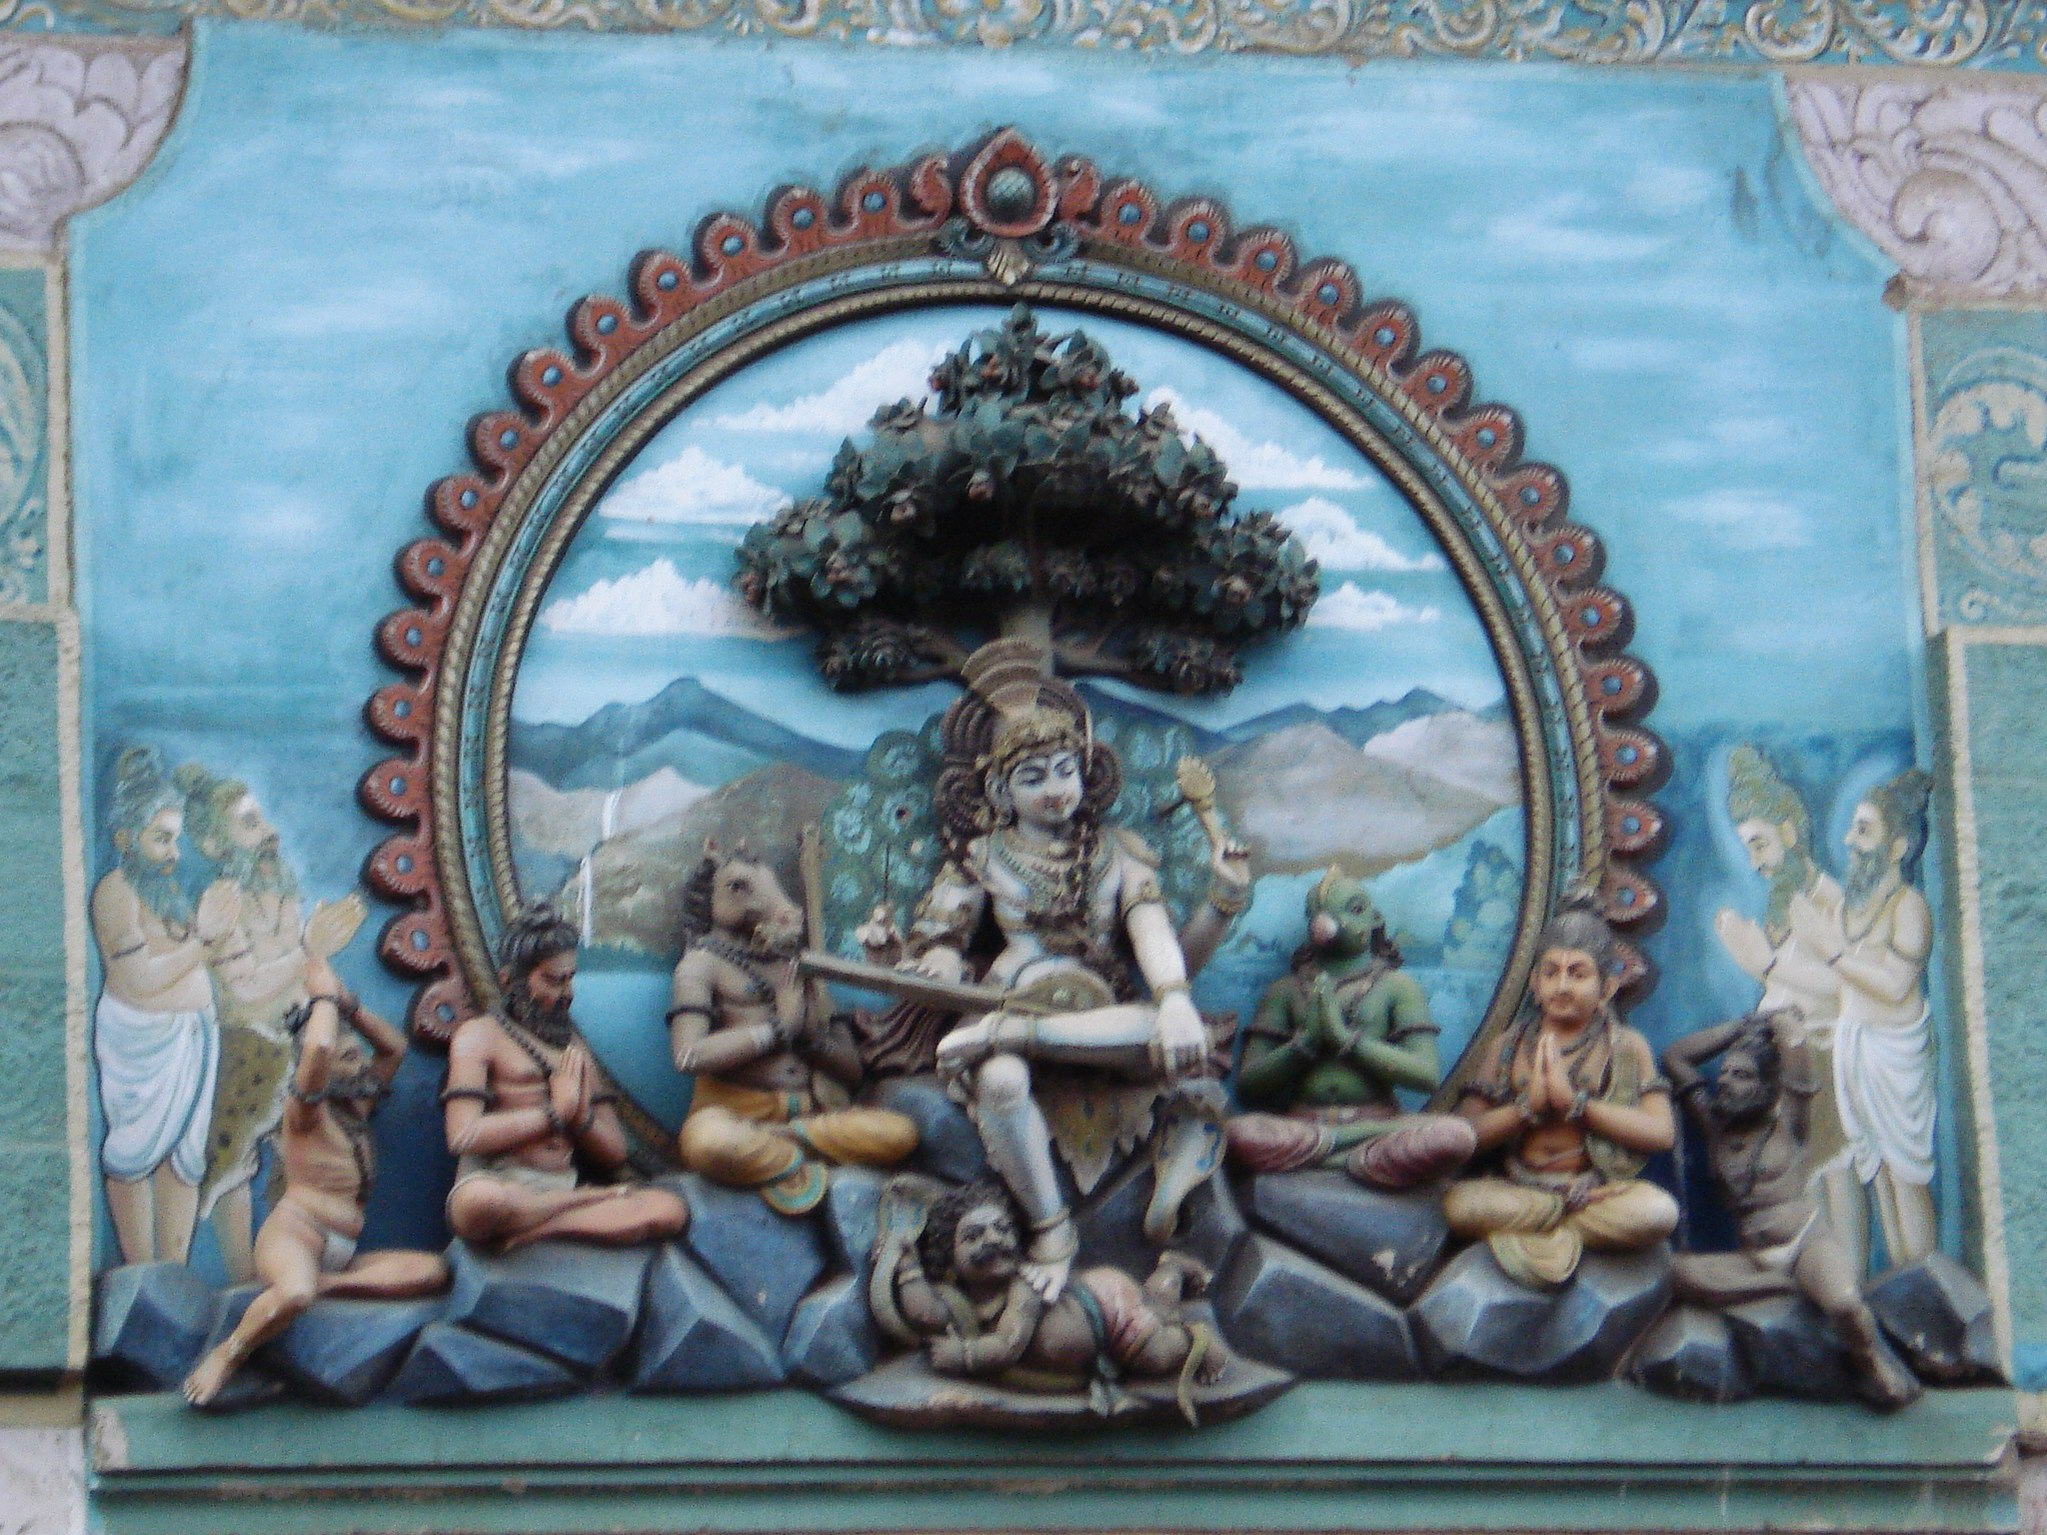 Dakshinamurthy - The complete information and online sale with free